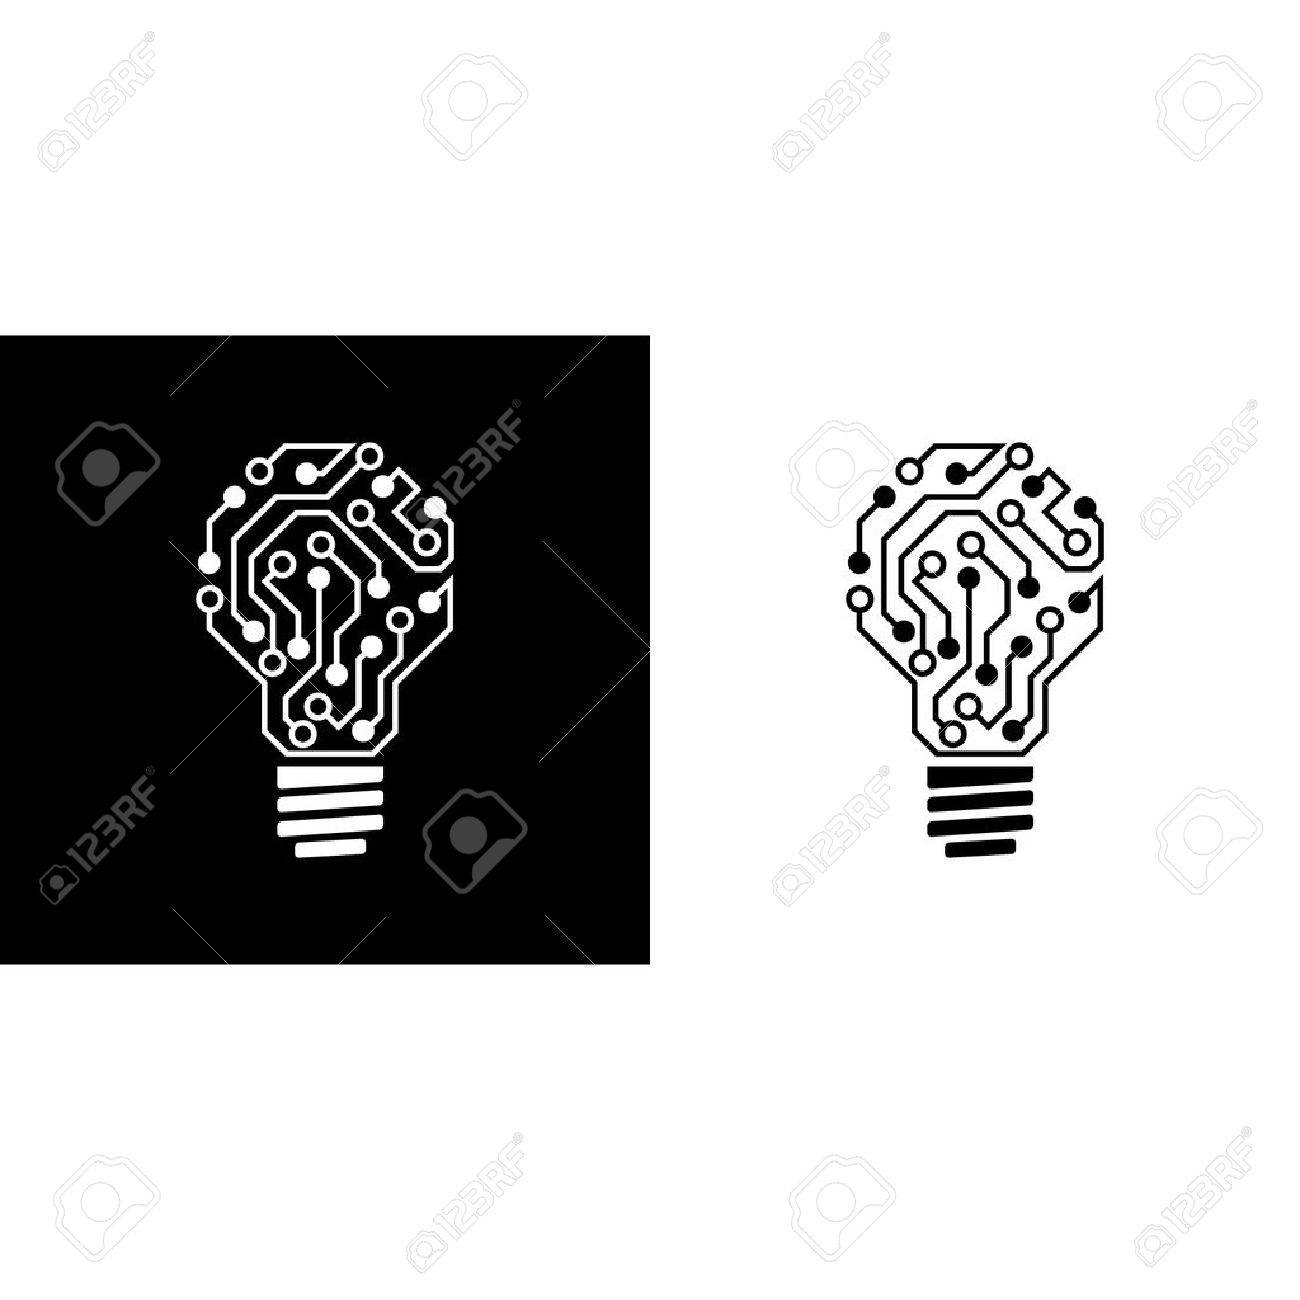 Awesome Electrical Symbol For Bulb Illustration - Electrical Diagram ...